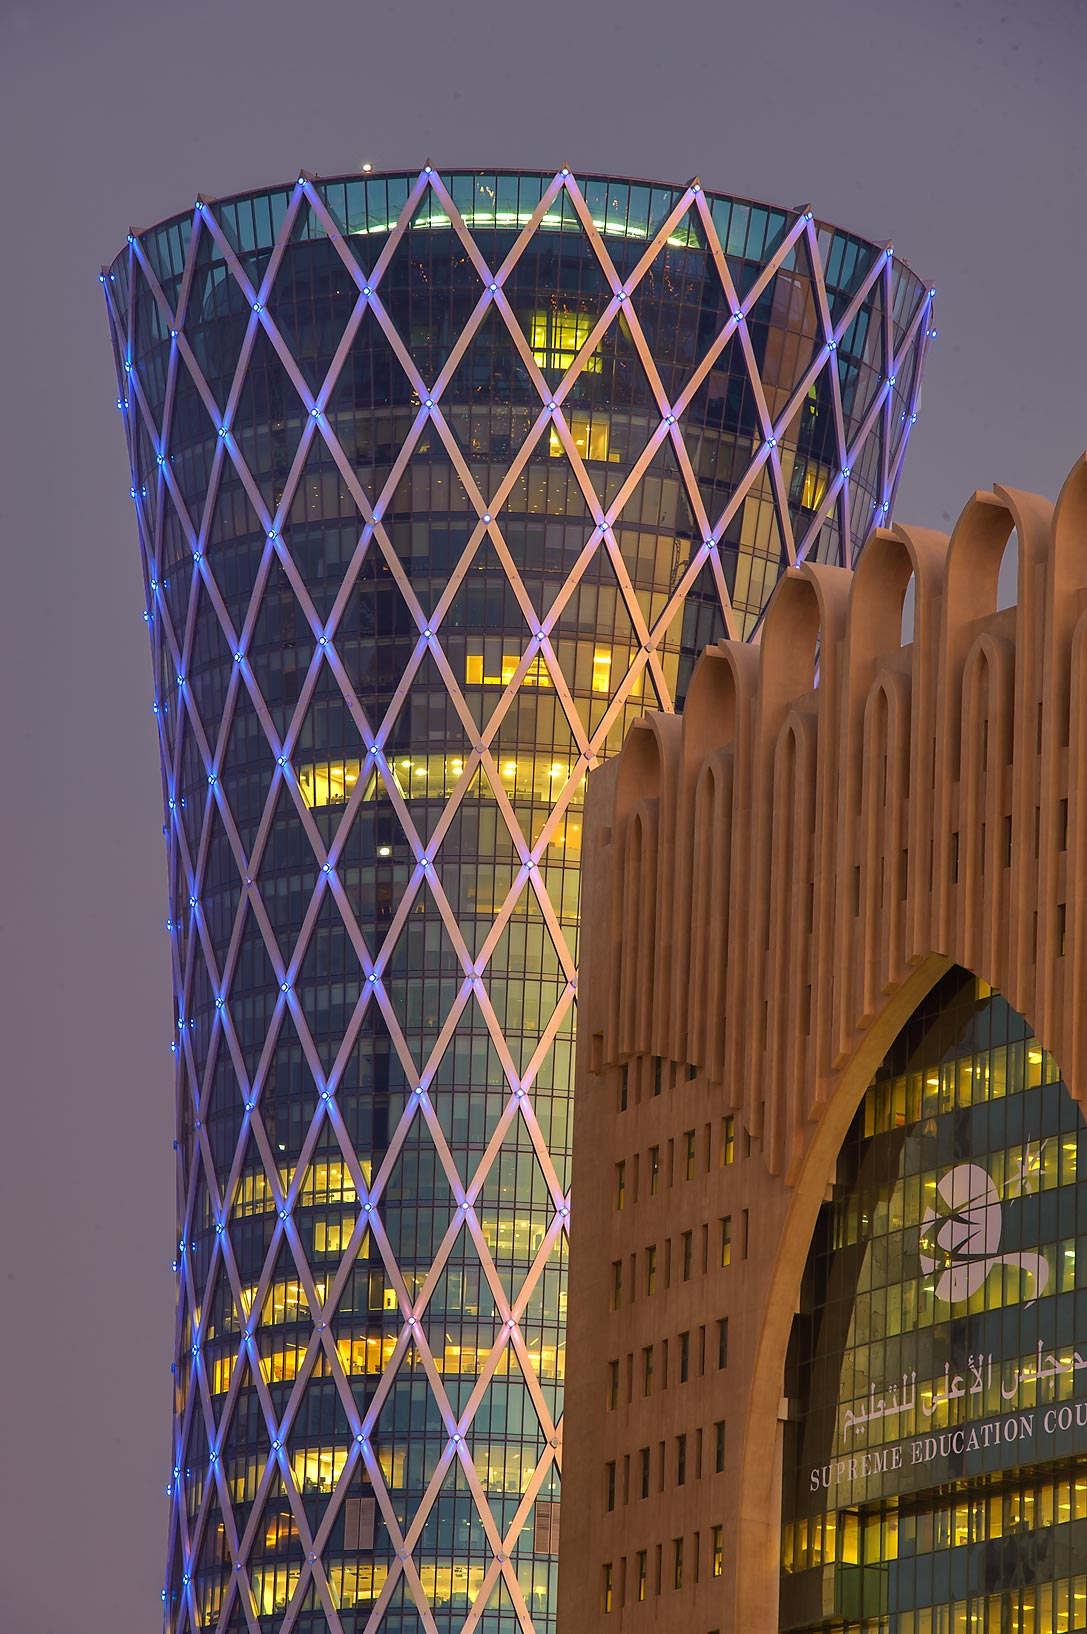 Tornado Tower and Supreme Education Council in West Bay at evening dusk. Doha, Qatar